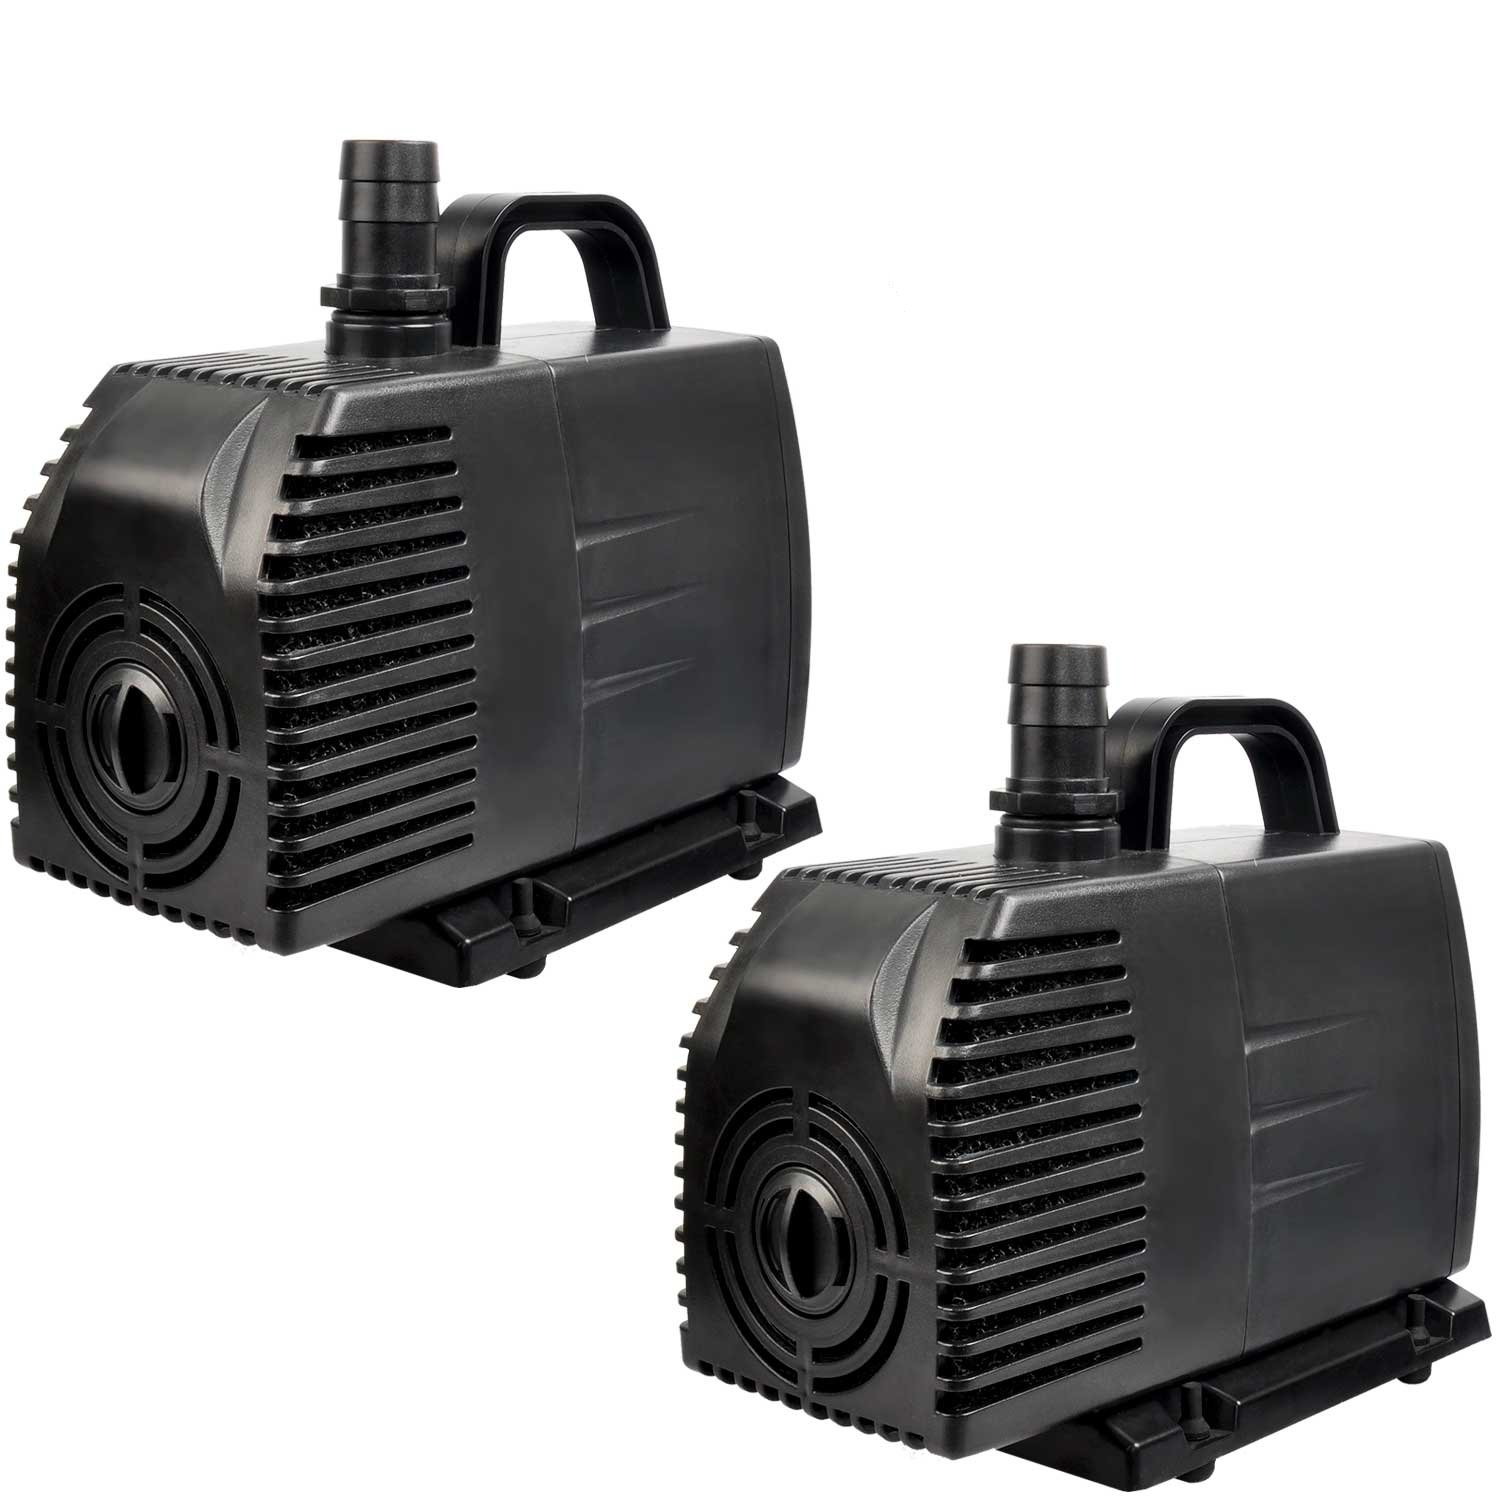 Simple Deluxe 1056 GPH UL Listed Submersible Pump with 15' Cord, Water Pump for Fish Tank, Hydroponics, Aquaponics, Fountains, Ponds, Statuary, Aquariums LGPUMP1056G